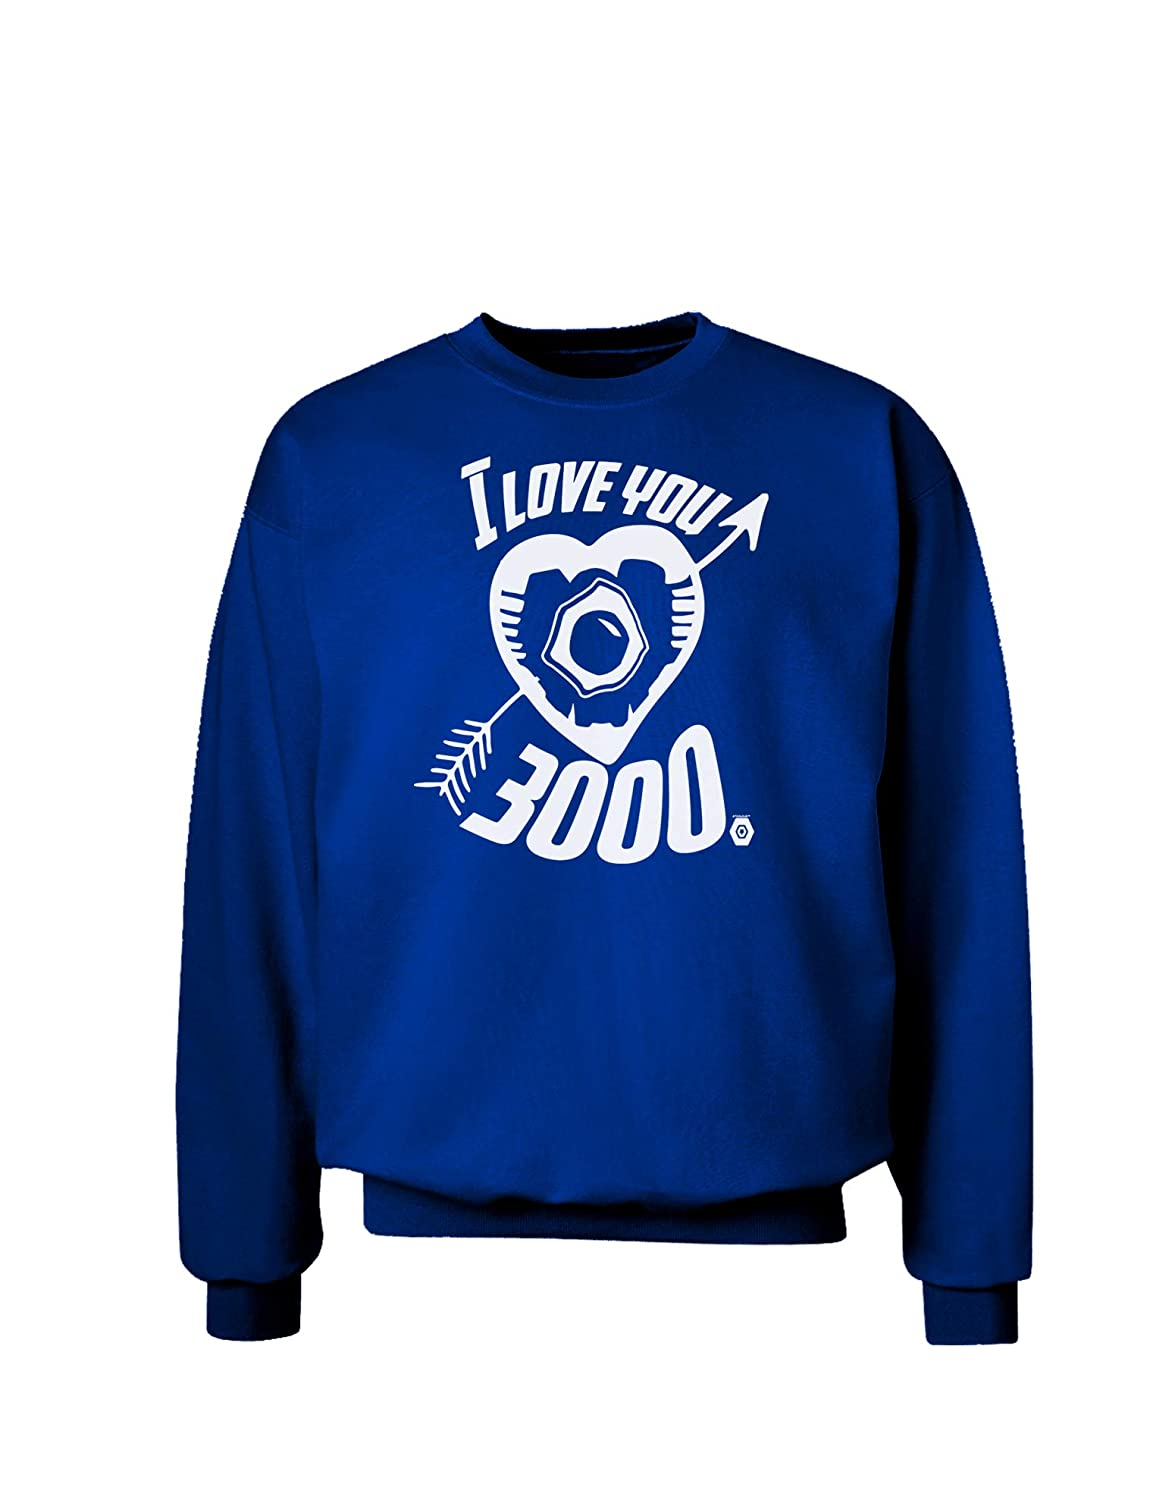 TooLoud I Love You 3000 Adult Dark Sweatshirt